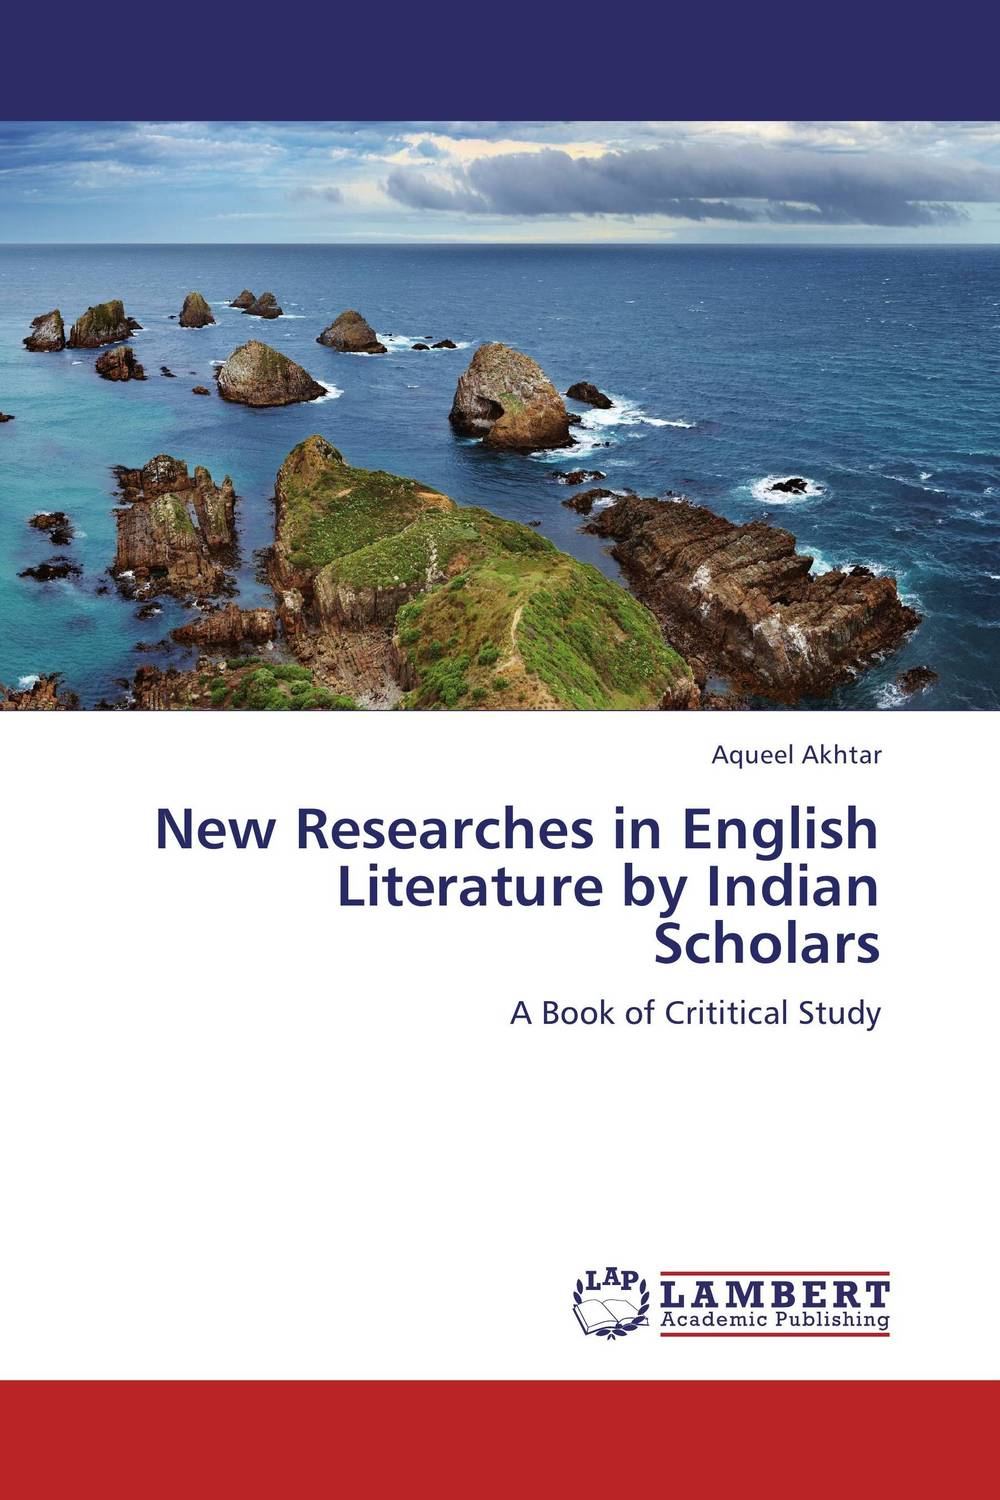 New Researches in English Literature by Indian Scholars rise and spread of english in india